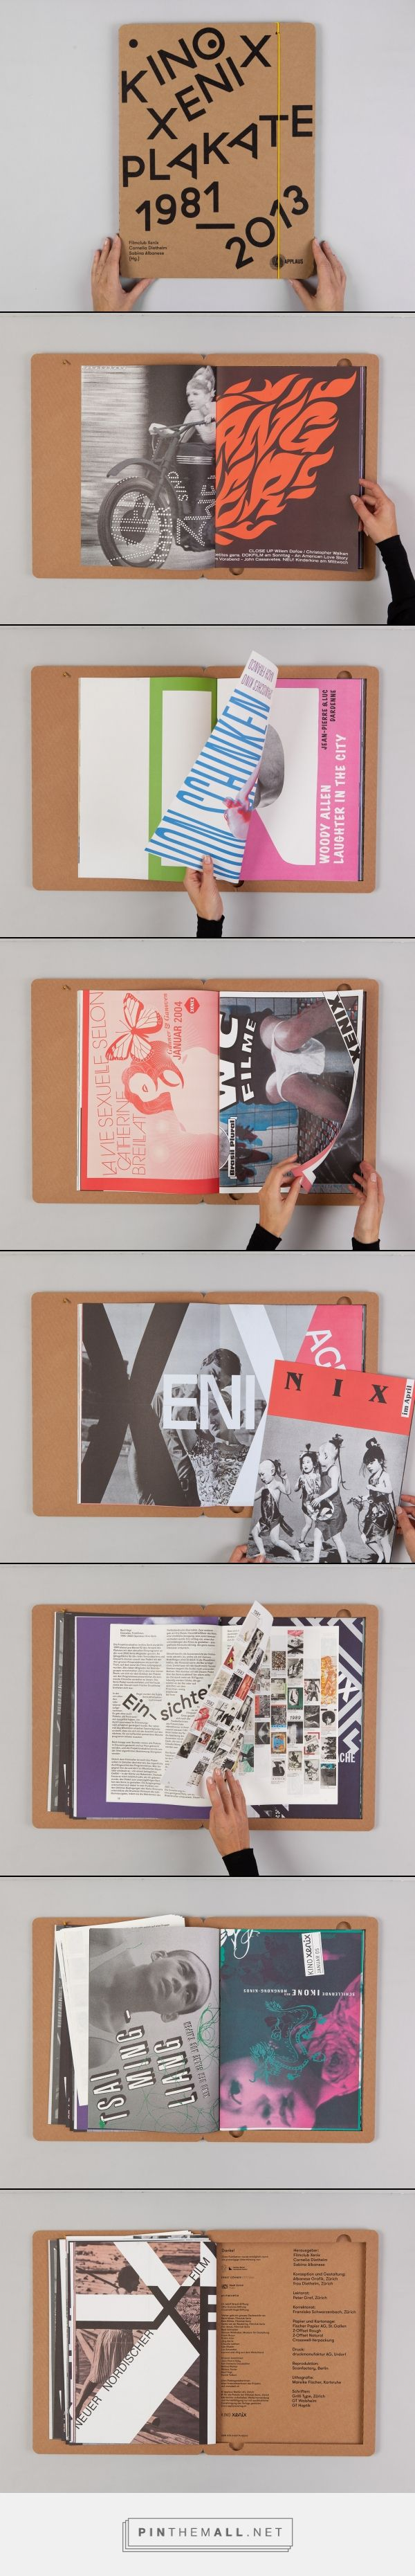 Xenix Theatre Book | Grilli Type | Independent Swiss Type Foundry http://grillitype.com/blog/in-use/xenix-theatre-book - created via http://pinthemall.net